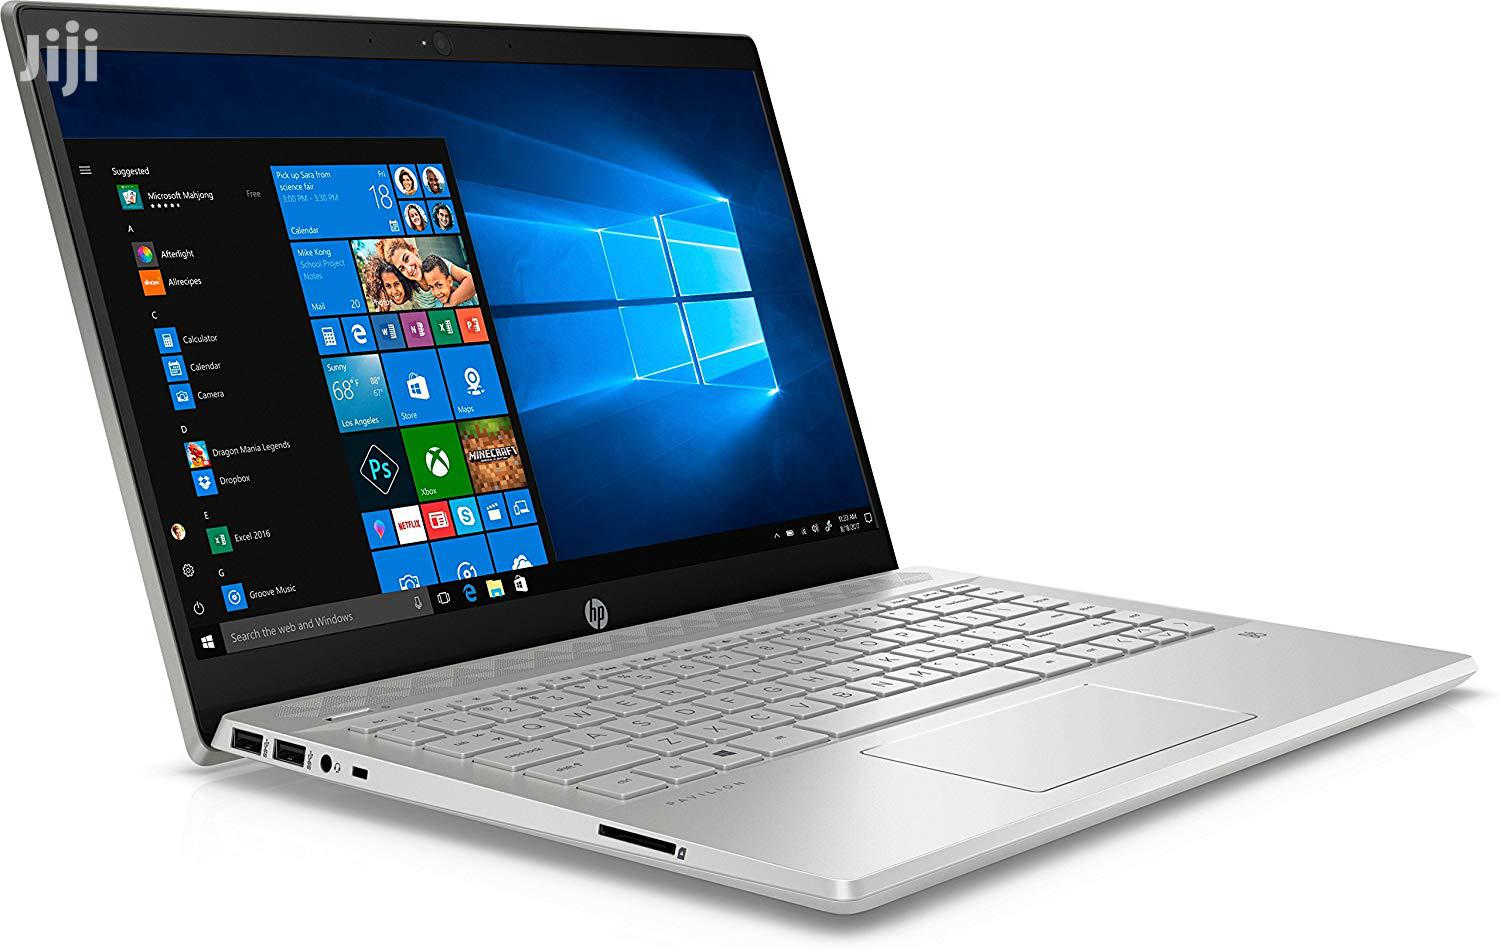 New Laptop HP Pavilion 14 8GB Intel Core i5 HDD 1T | Laptops & Computers for sale in Accra Metropolitan, Greater Accra, Ghana